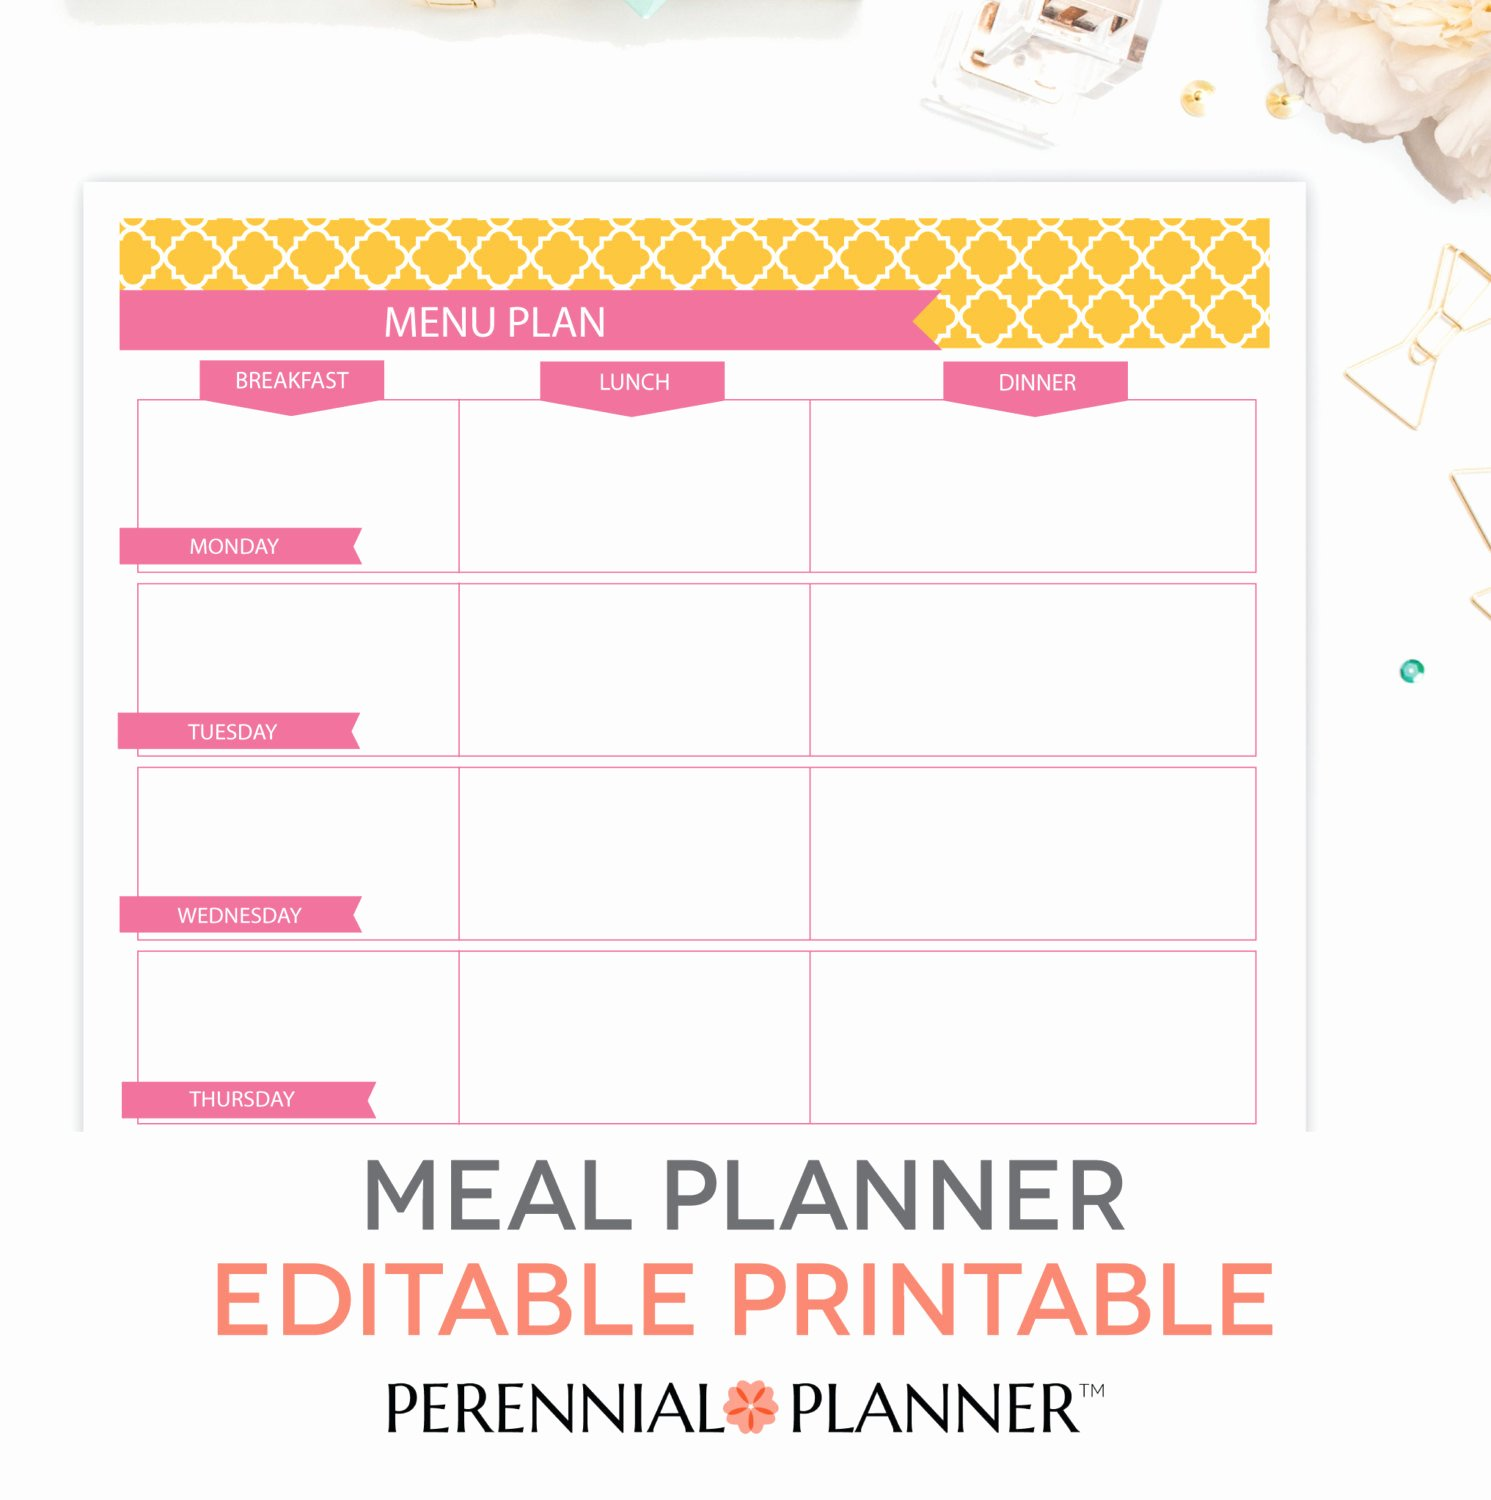 Weekly Meal Planning Template Fresh Menu Plan Weekly Meal Planning Template Printable Editable